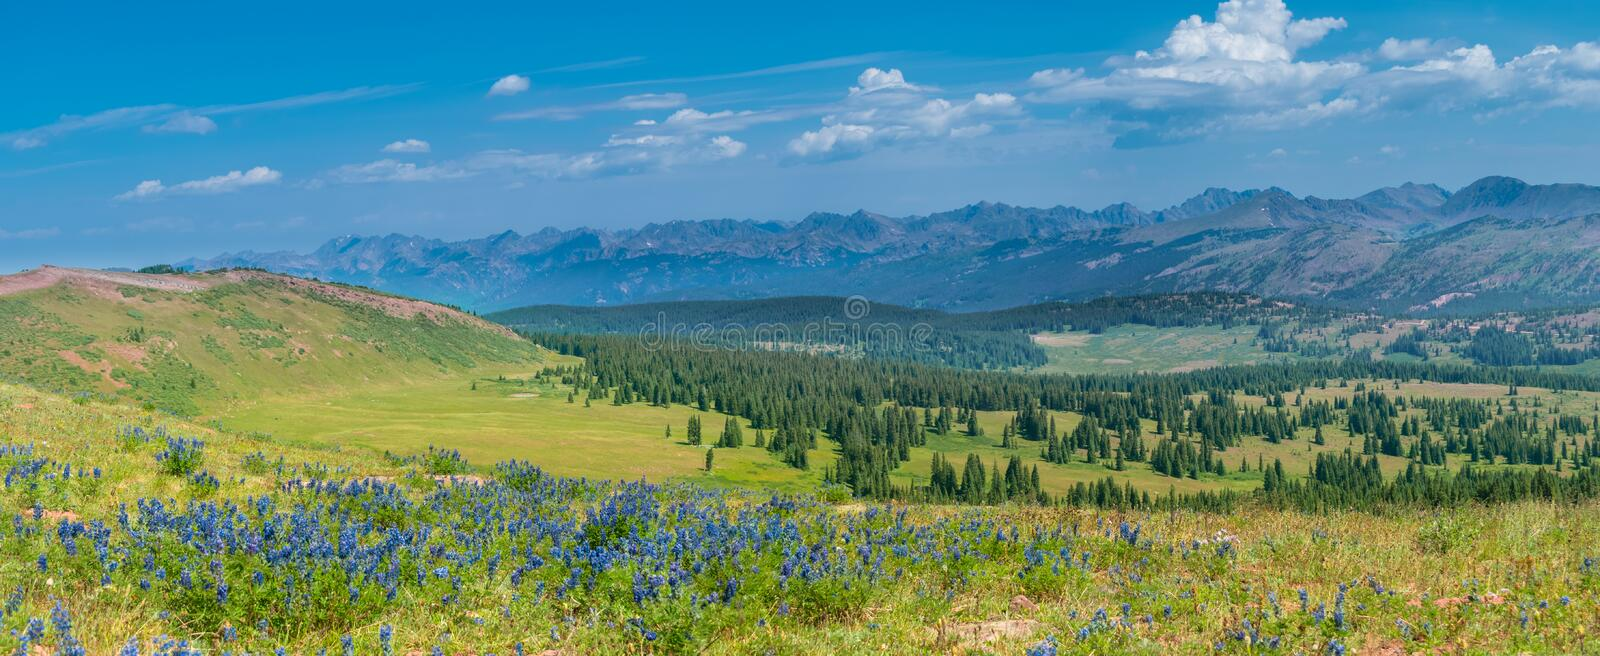 Rocky Mountains Summer Wildflowers stockfotografie